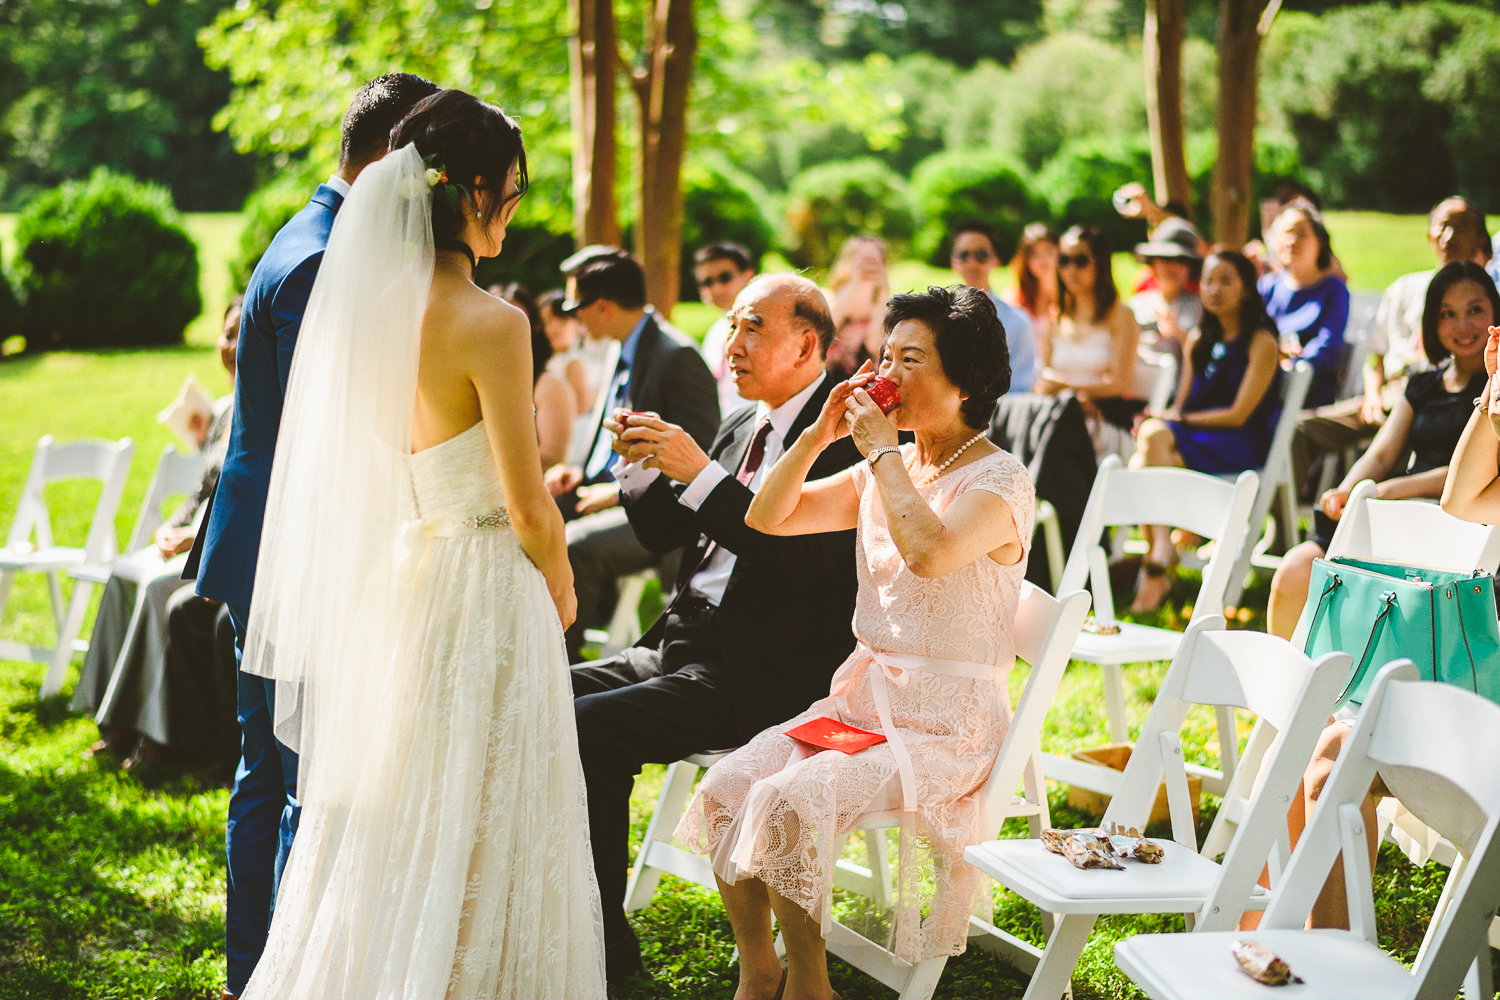 031 - traditional tea ceremony virginia wedding.jpg